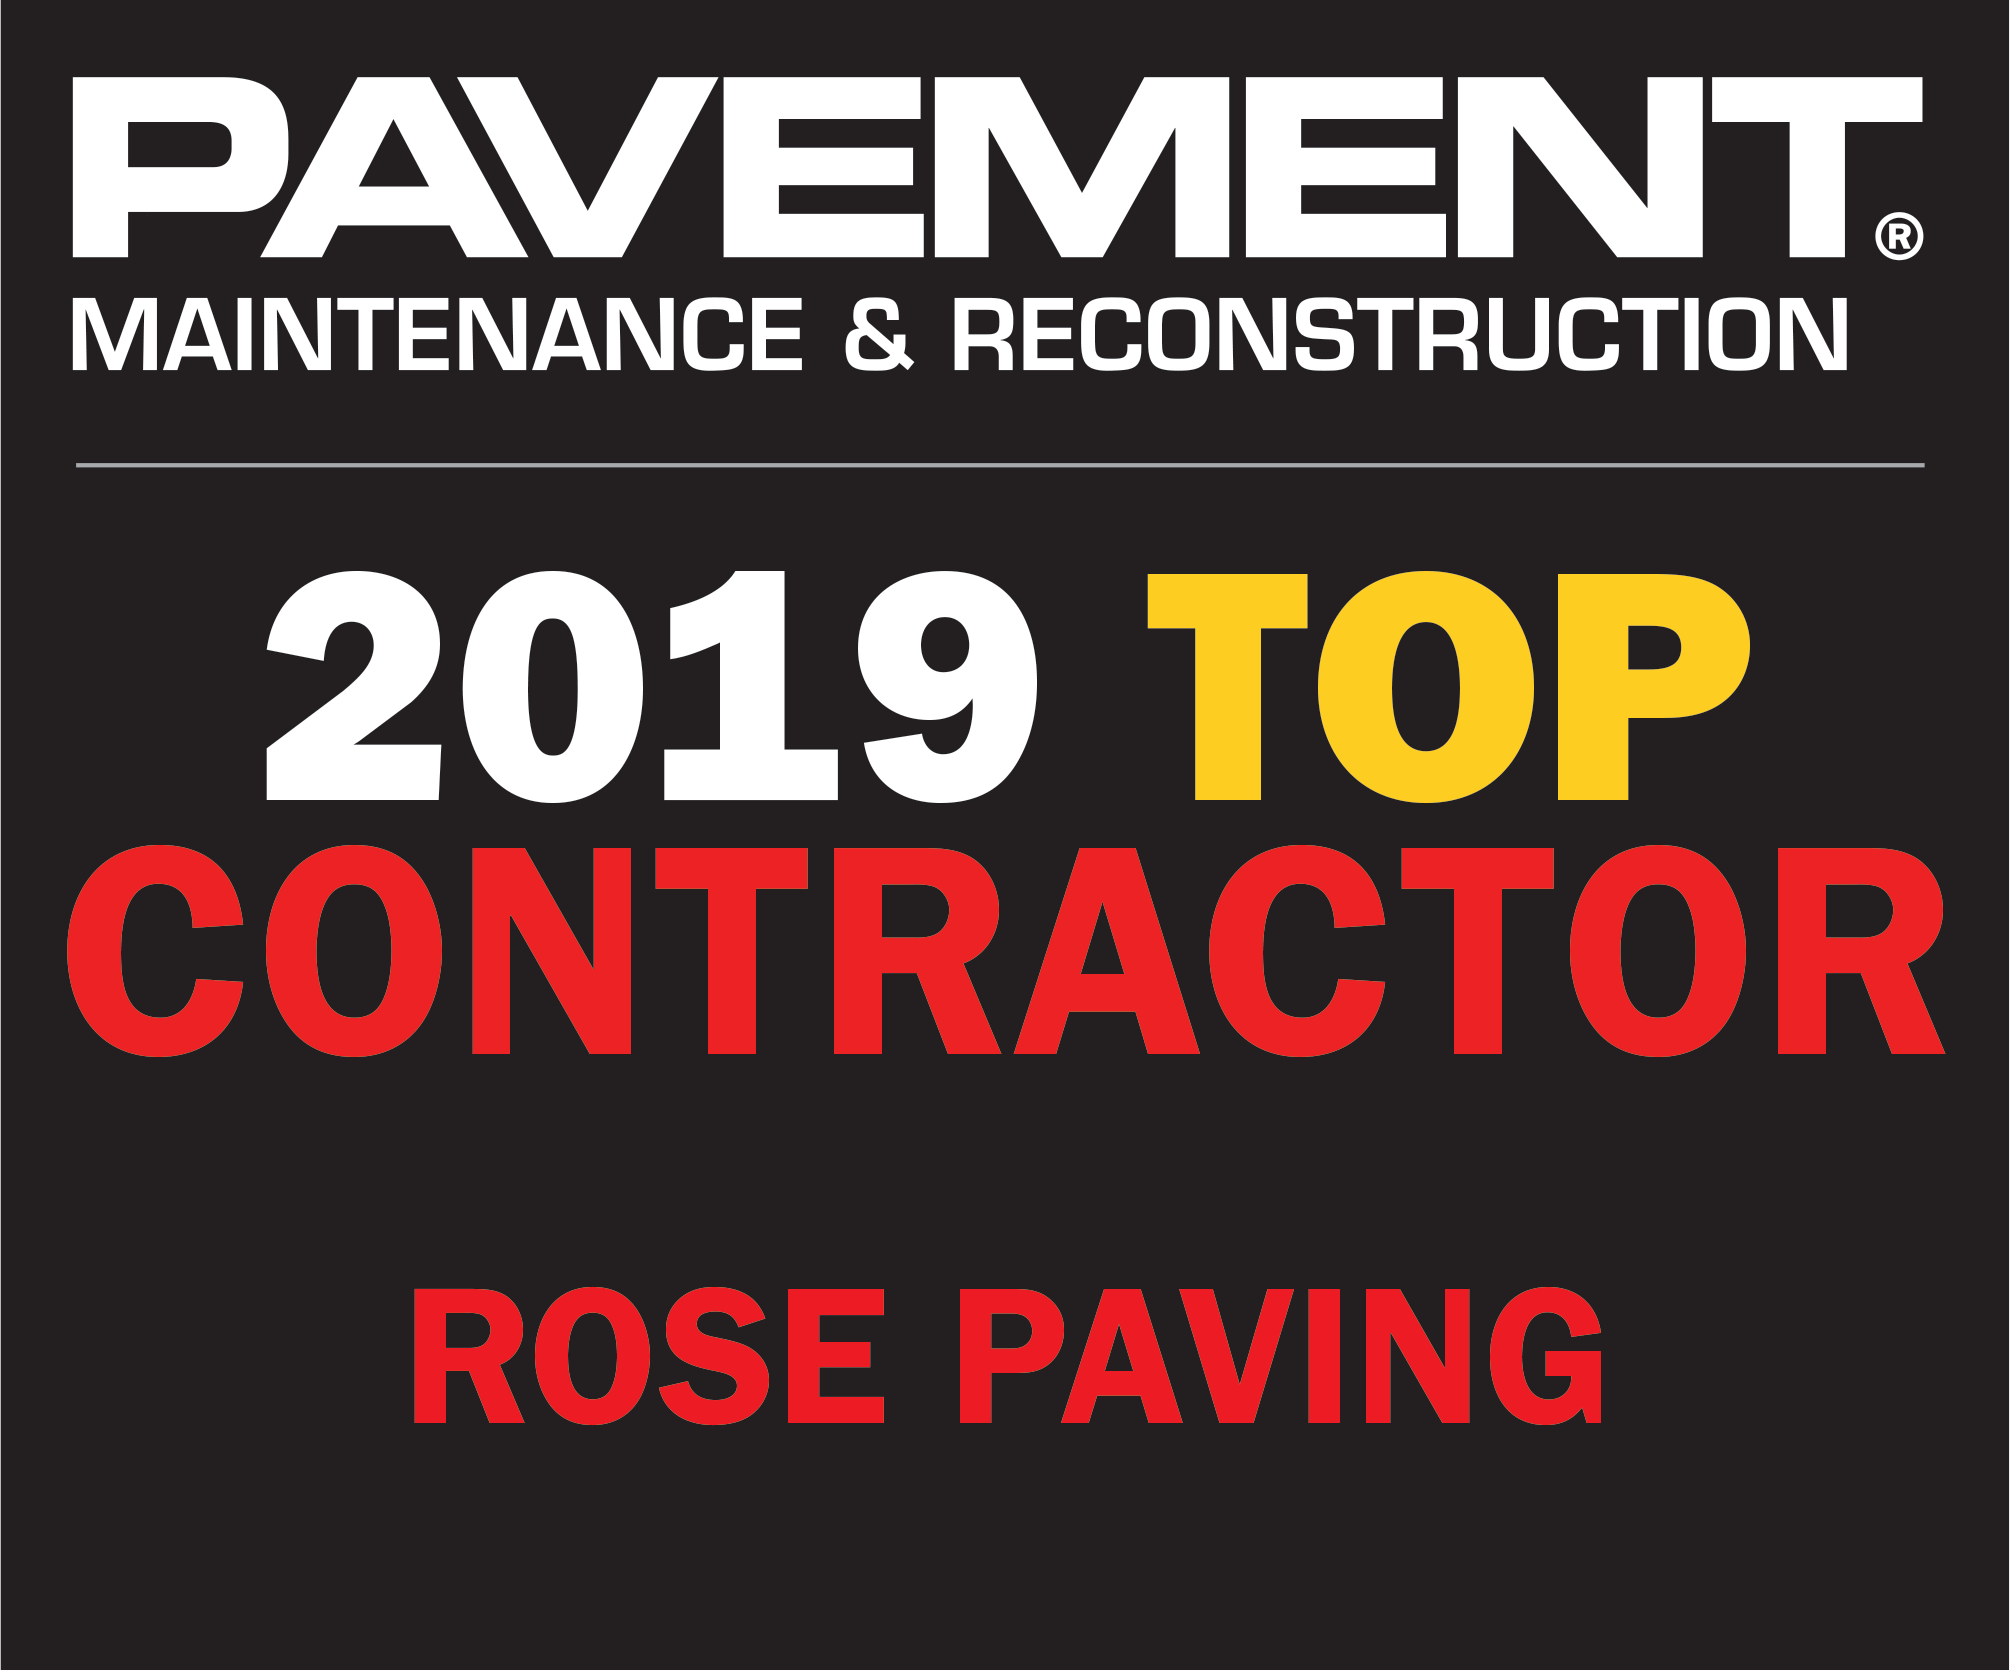 Pavement Maintenance and Reconstruction 2019 Top Contractor